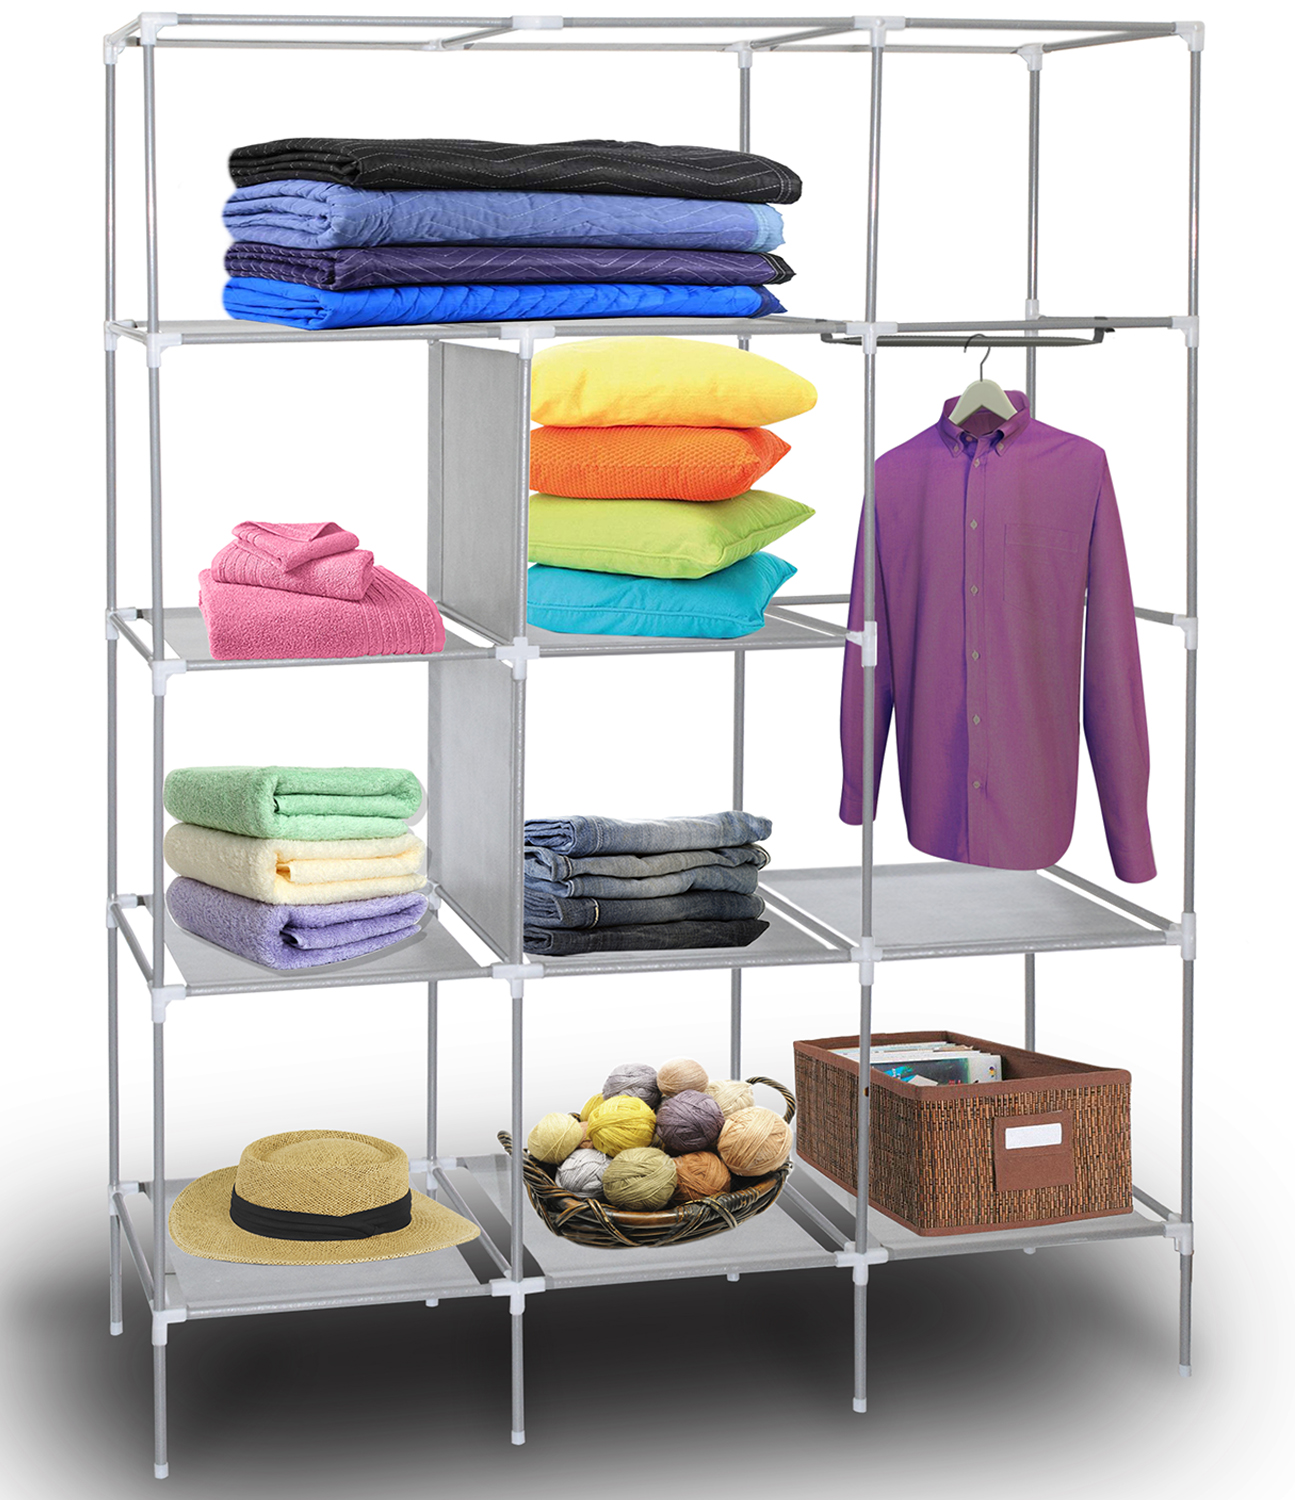 hanging that depot your organizer decor modul can closetmaid and suit customize storage to style shelves for lasting systems provide lowes needs you home shelf closet